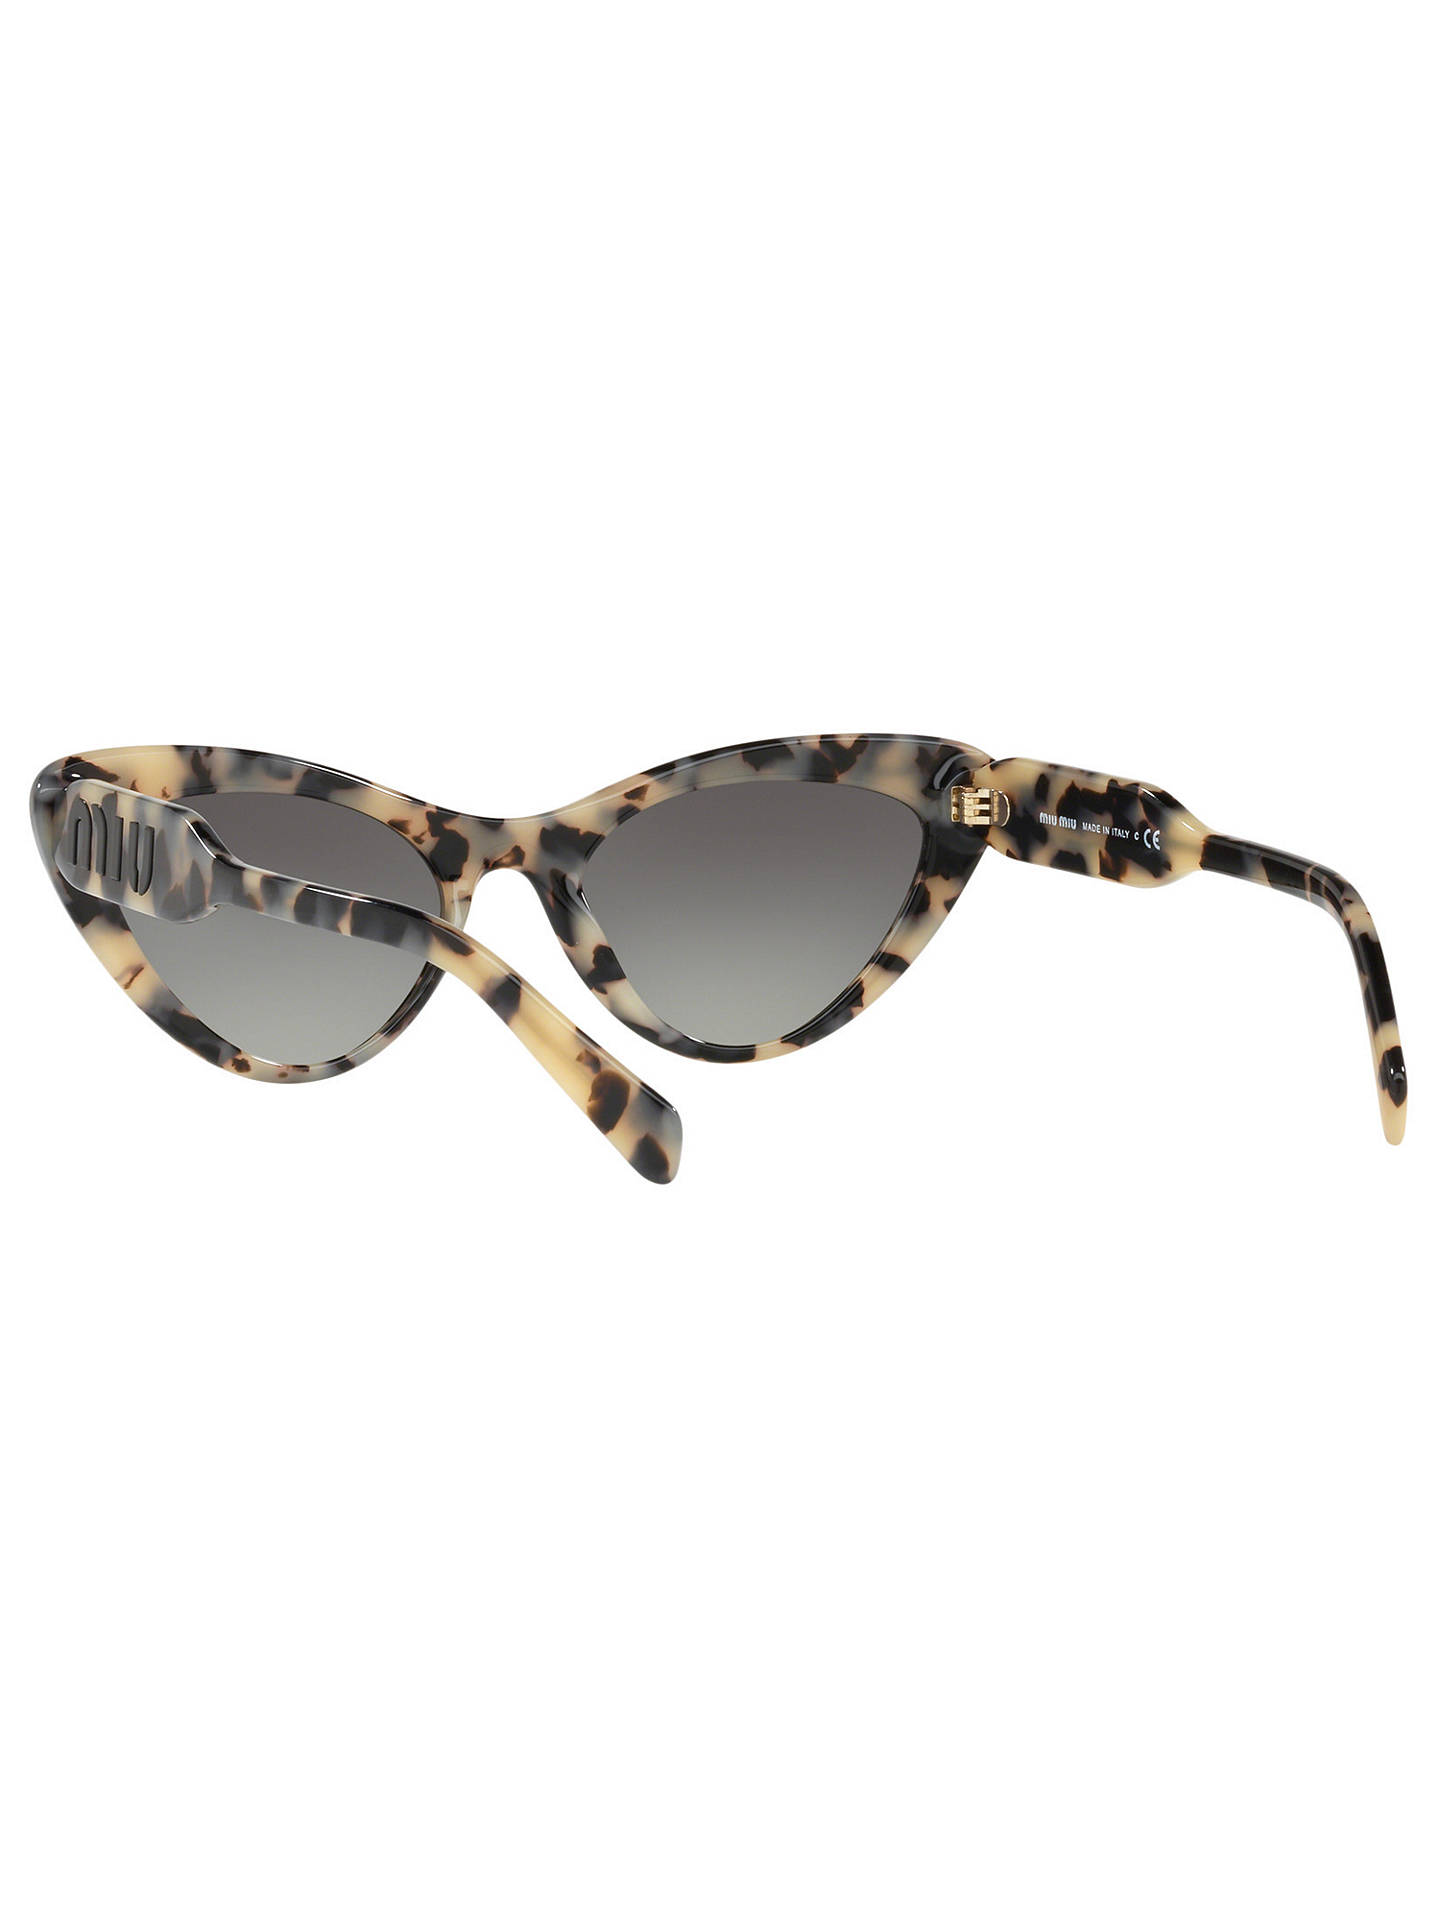 1133c6d8f13 ... Buy Miu Miu MU 05TS Women s Stud Cat s Eye Sunglasses